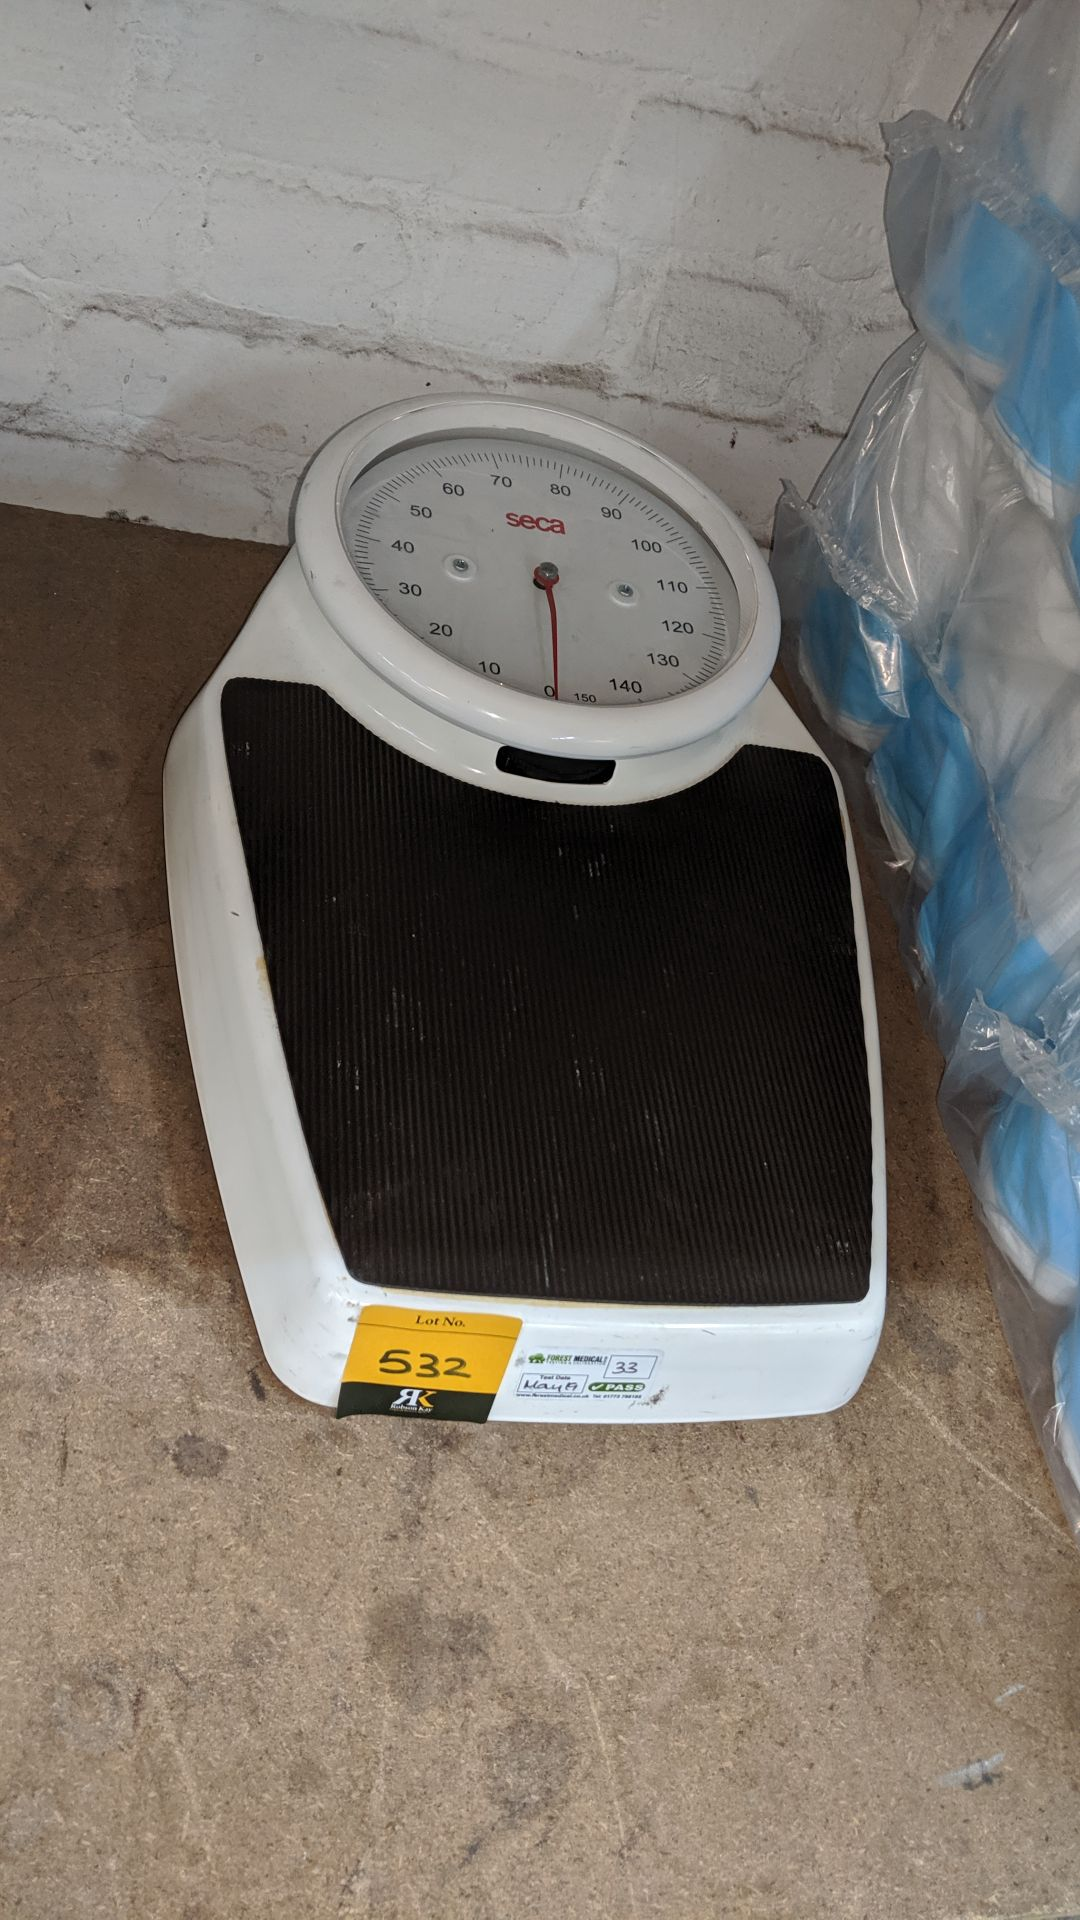 Lot 532 - Seca stand-on scales. This is one of a large number of lots used/owned by One To One (North West)